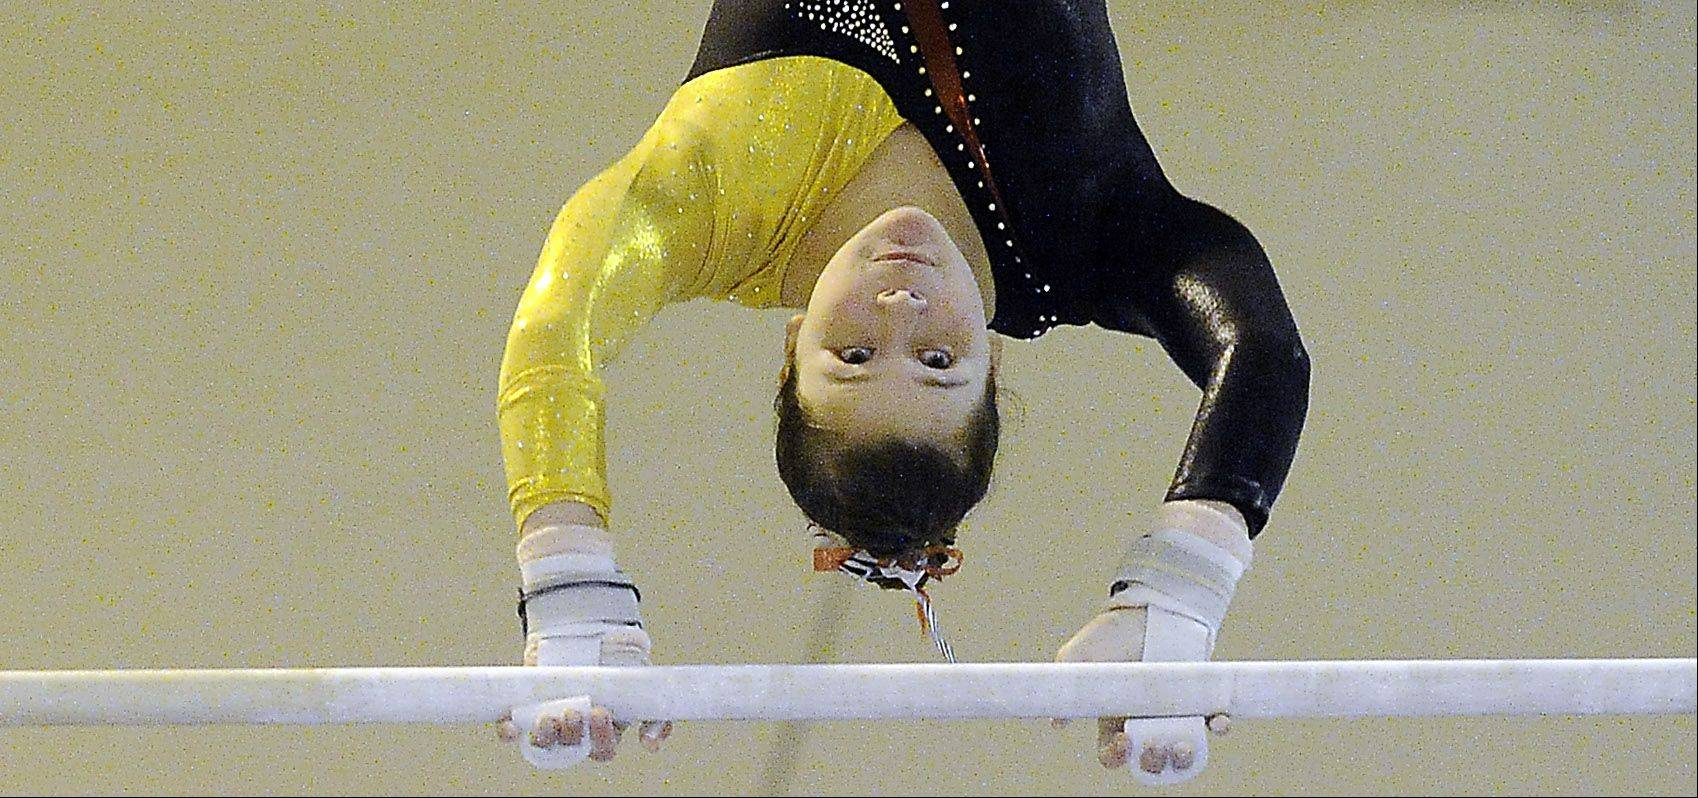 Schaumburg's Caiti Poland of Schaumburg performs her routine on the uneven parallel bars at the 2013 Regional Gymnastics Championships at Prospect on Monday.